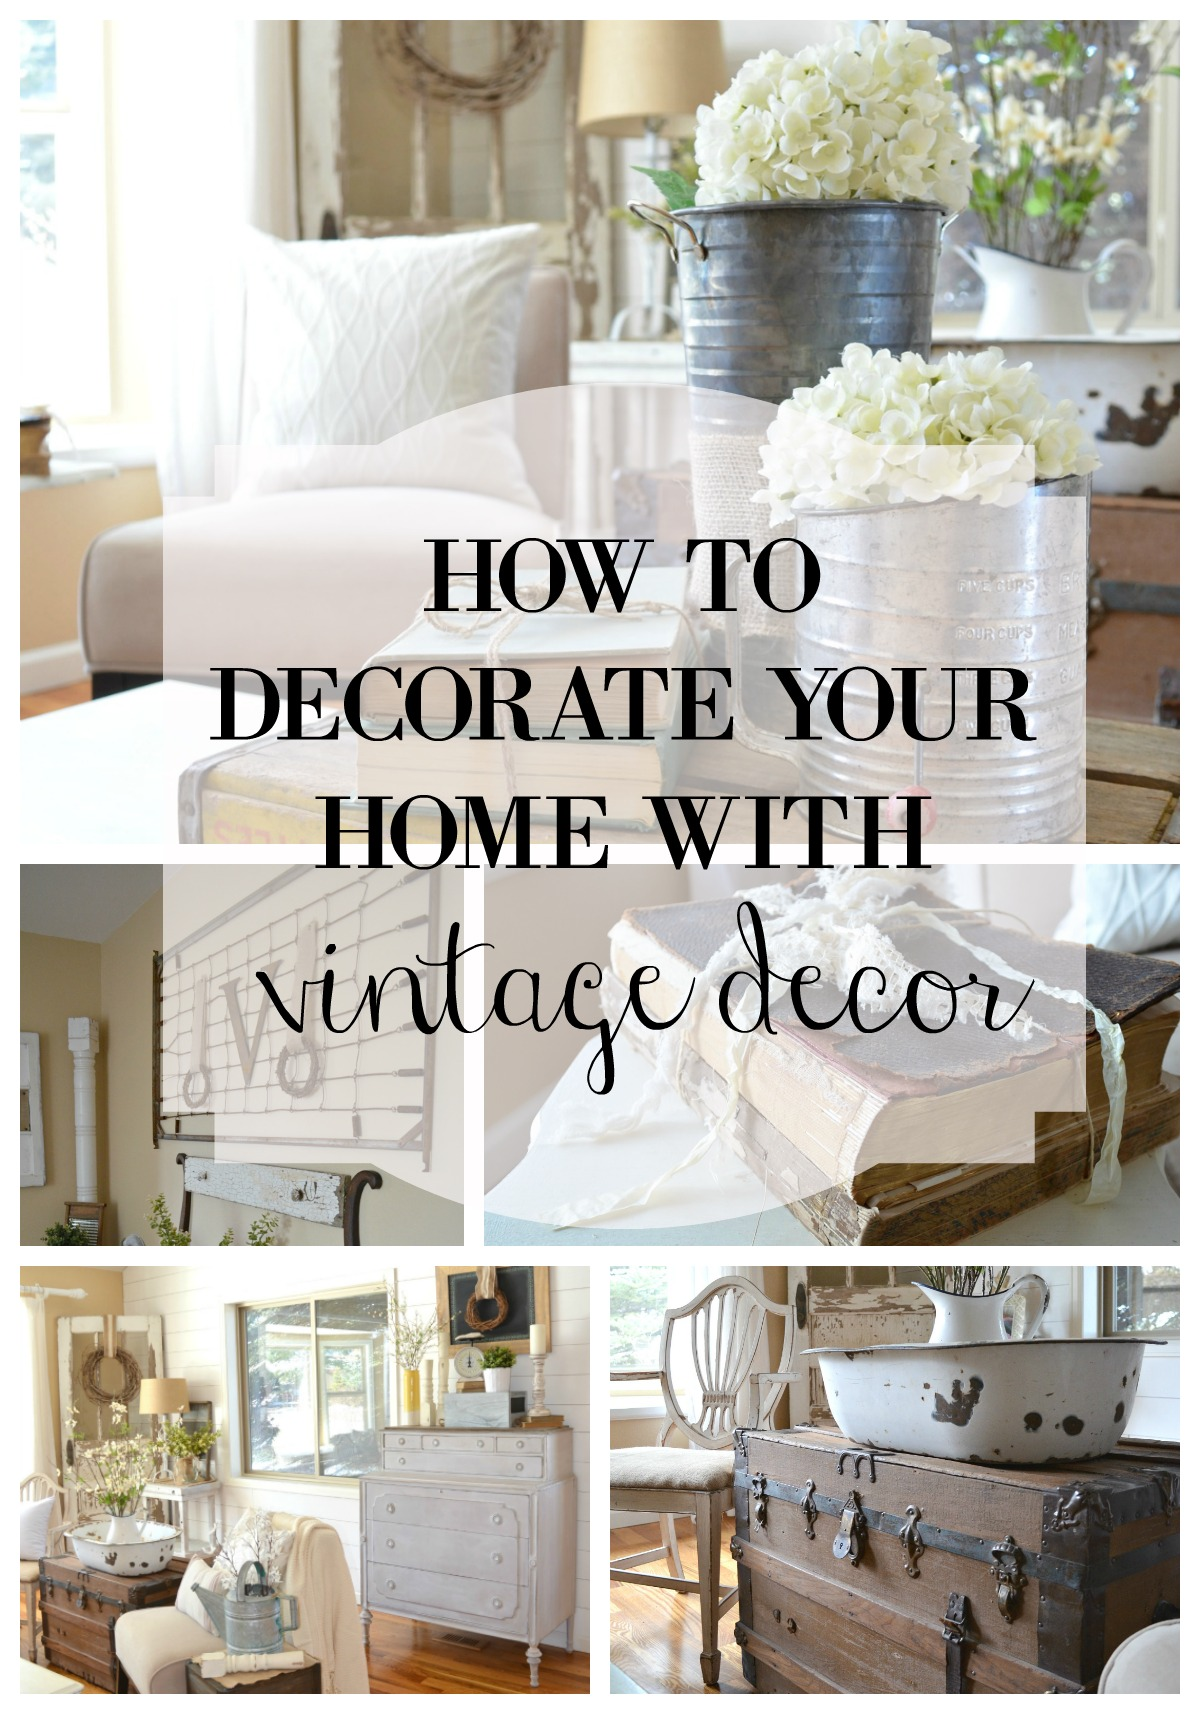 How to decorate with vintage decor little vintage nest - Creative decoration ideas for home without ripping you off ...